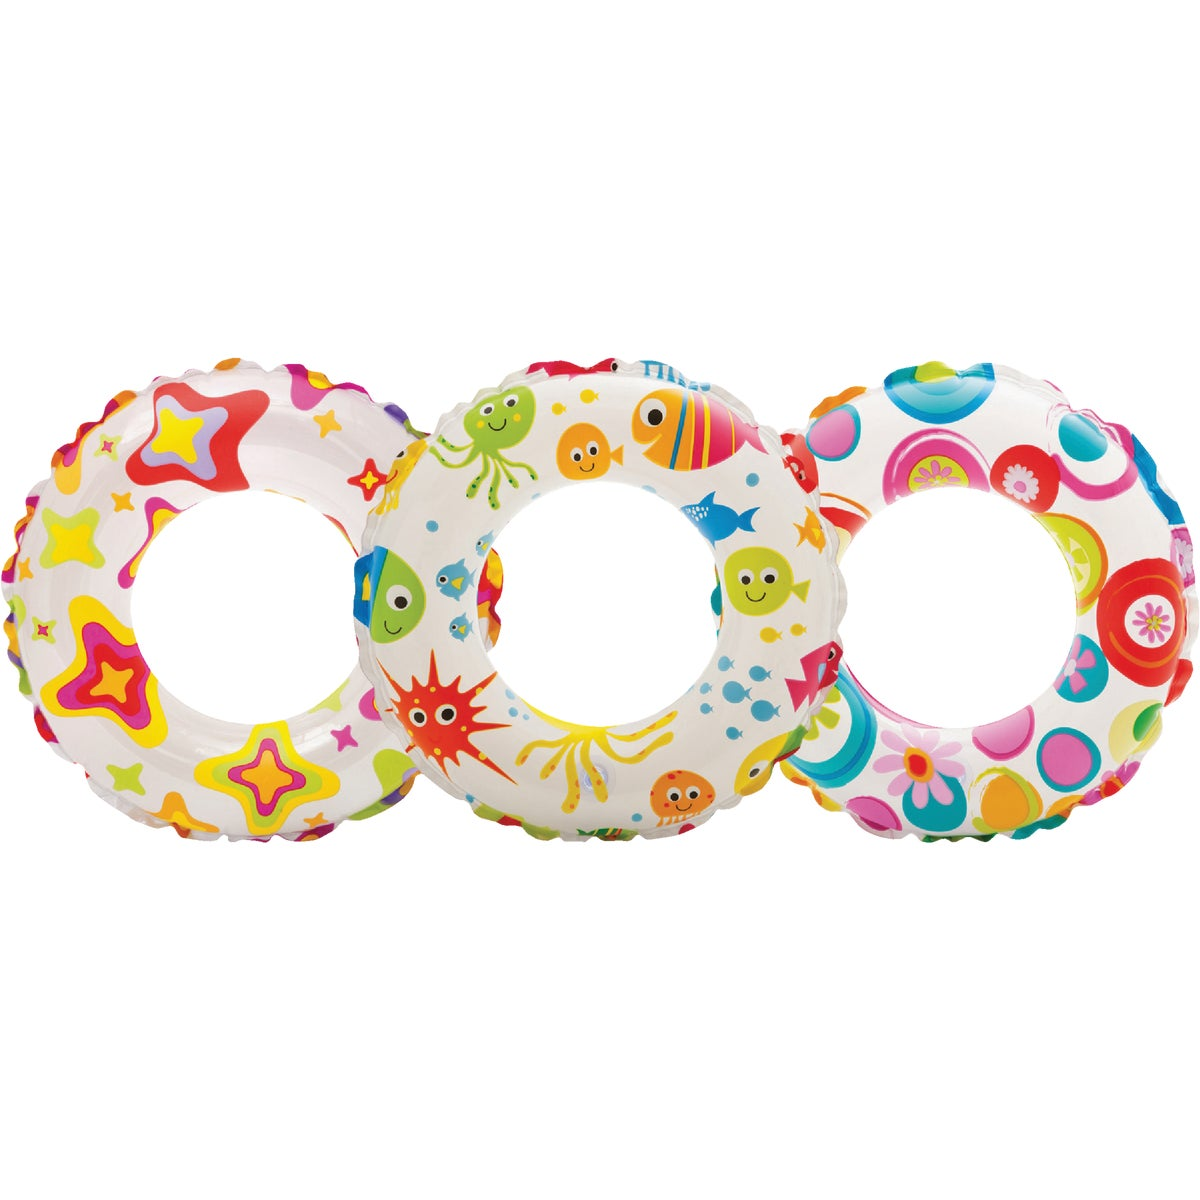 LIVELY PRINT SWIM RINGS - 59230EP by Intex Recreation